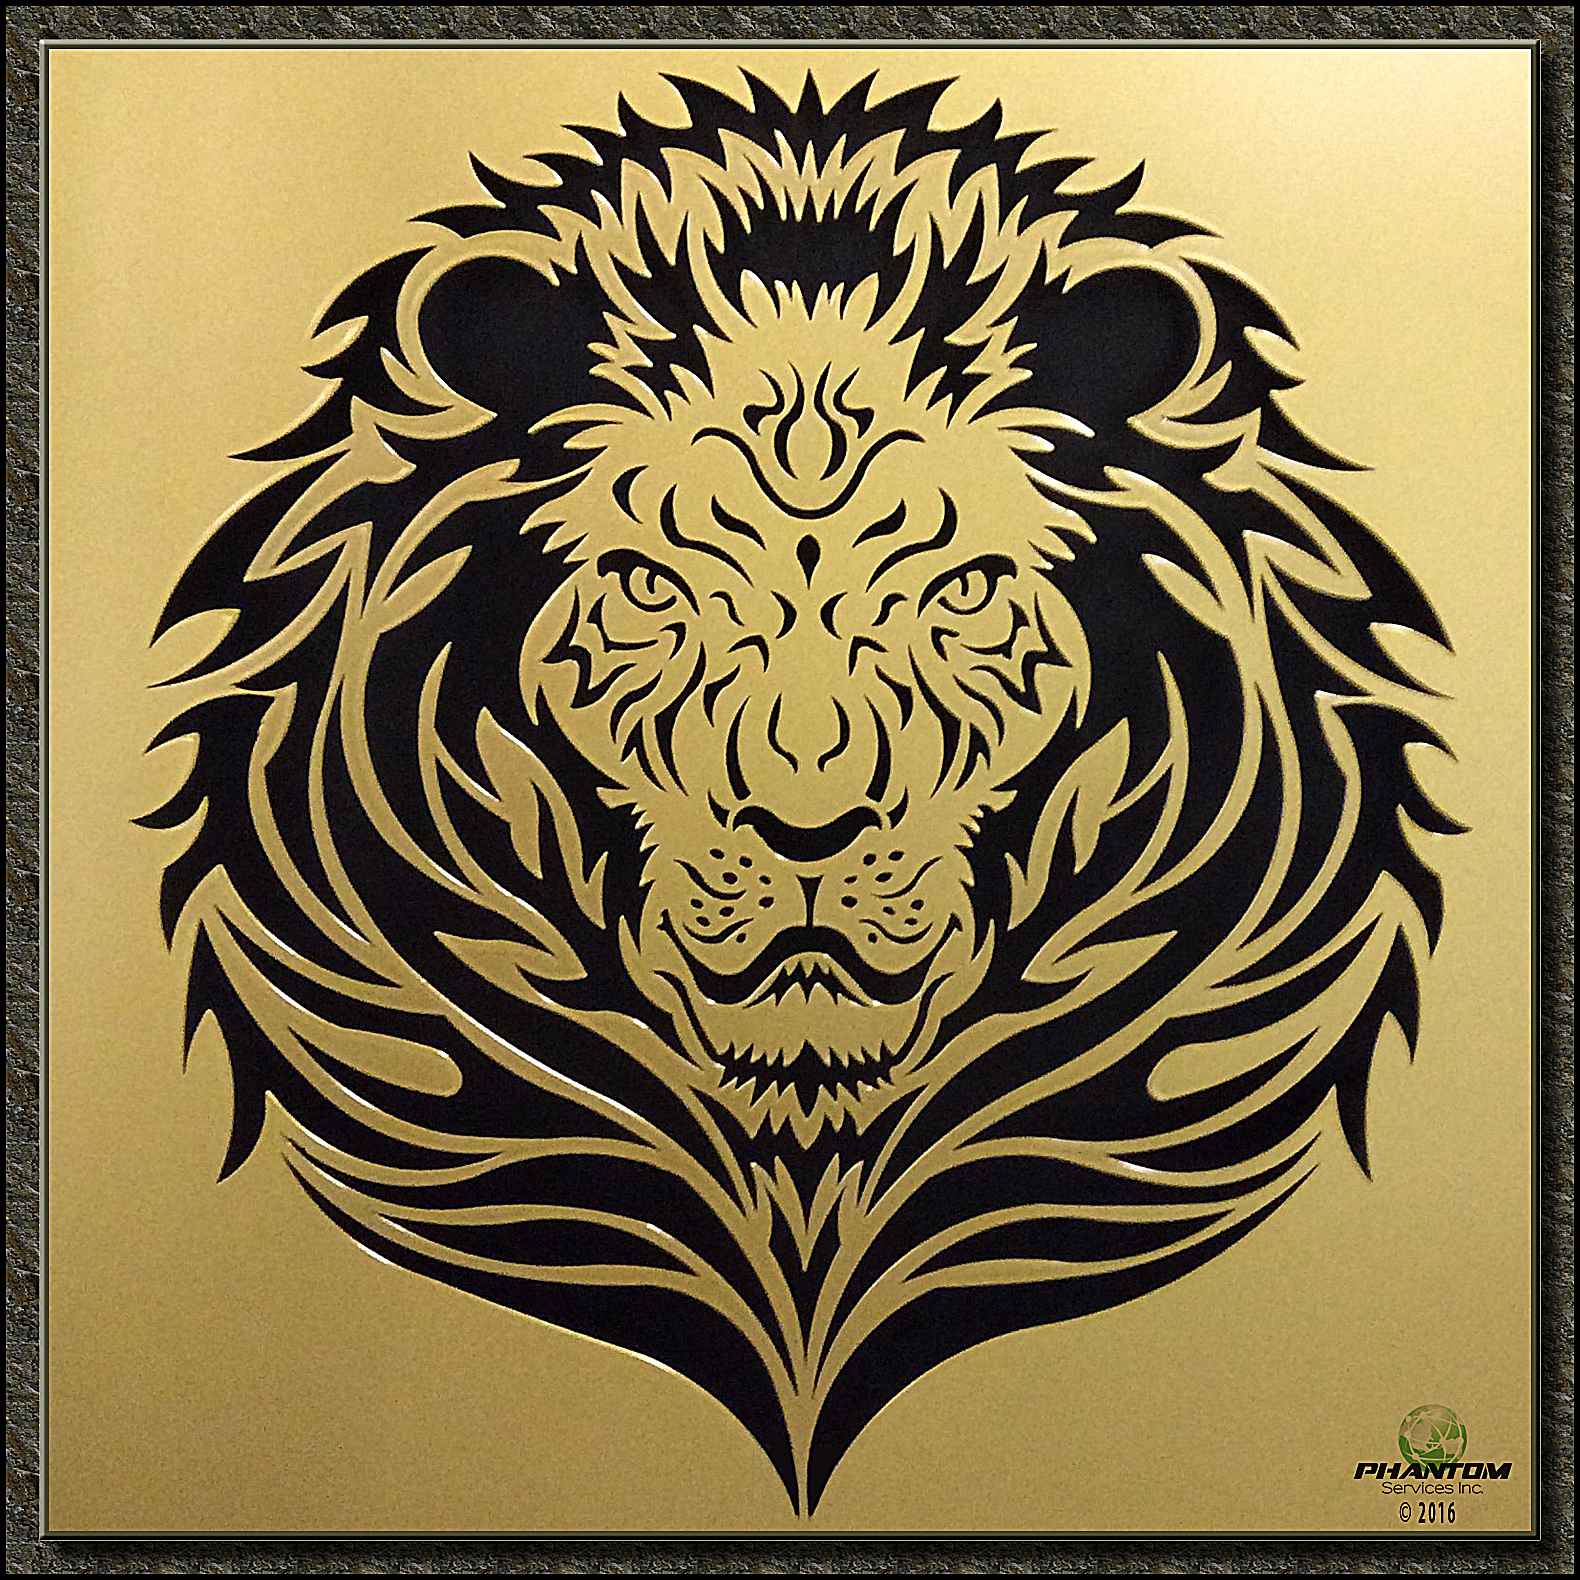 Lion Metal Wall Art By Laser Cutting Gives You Extreme Possibilities For Design Precision